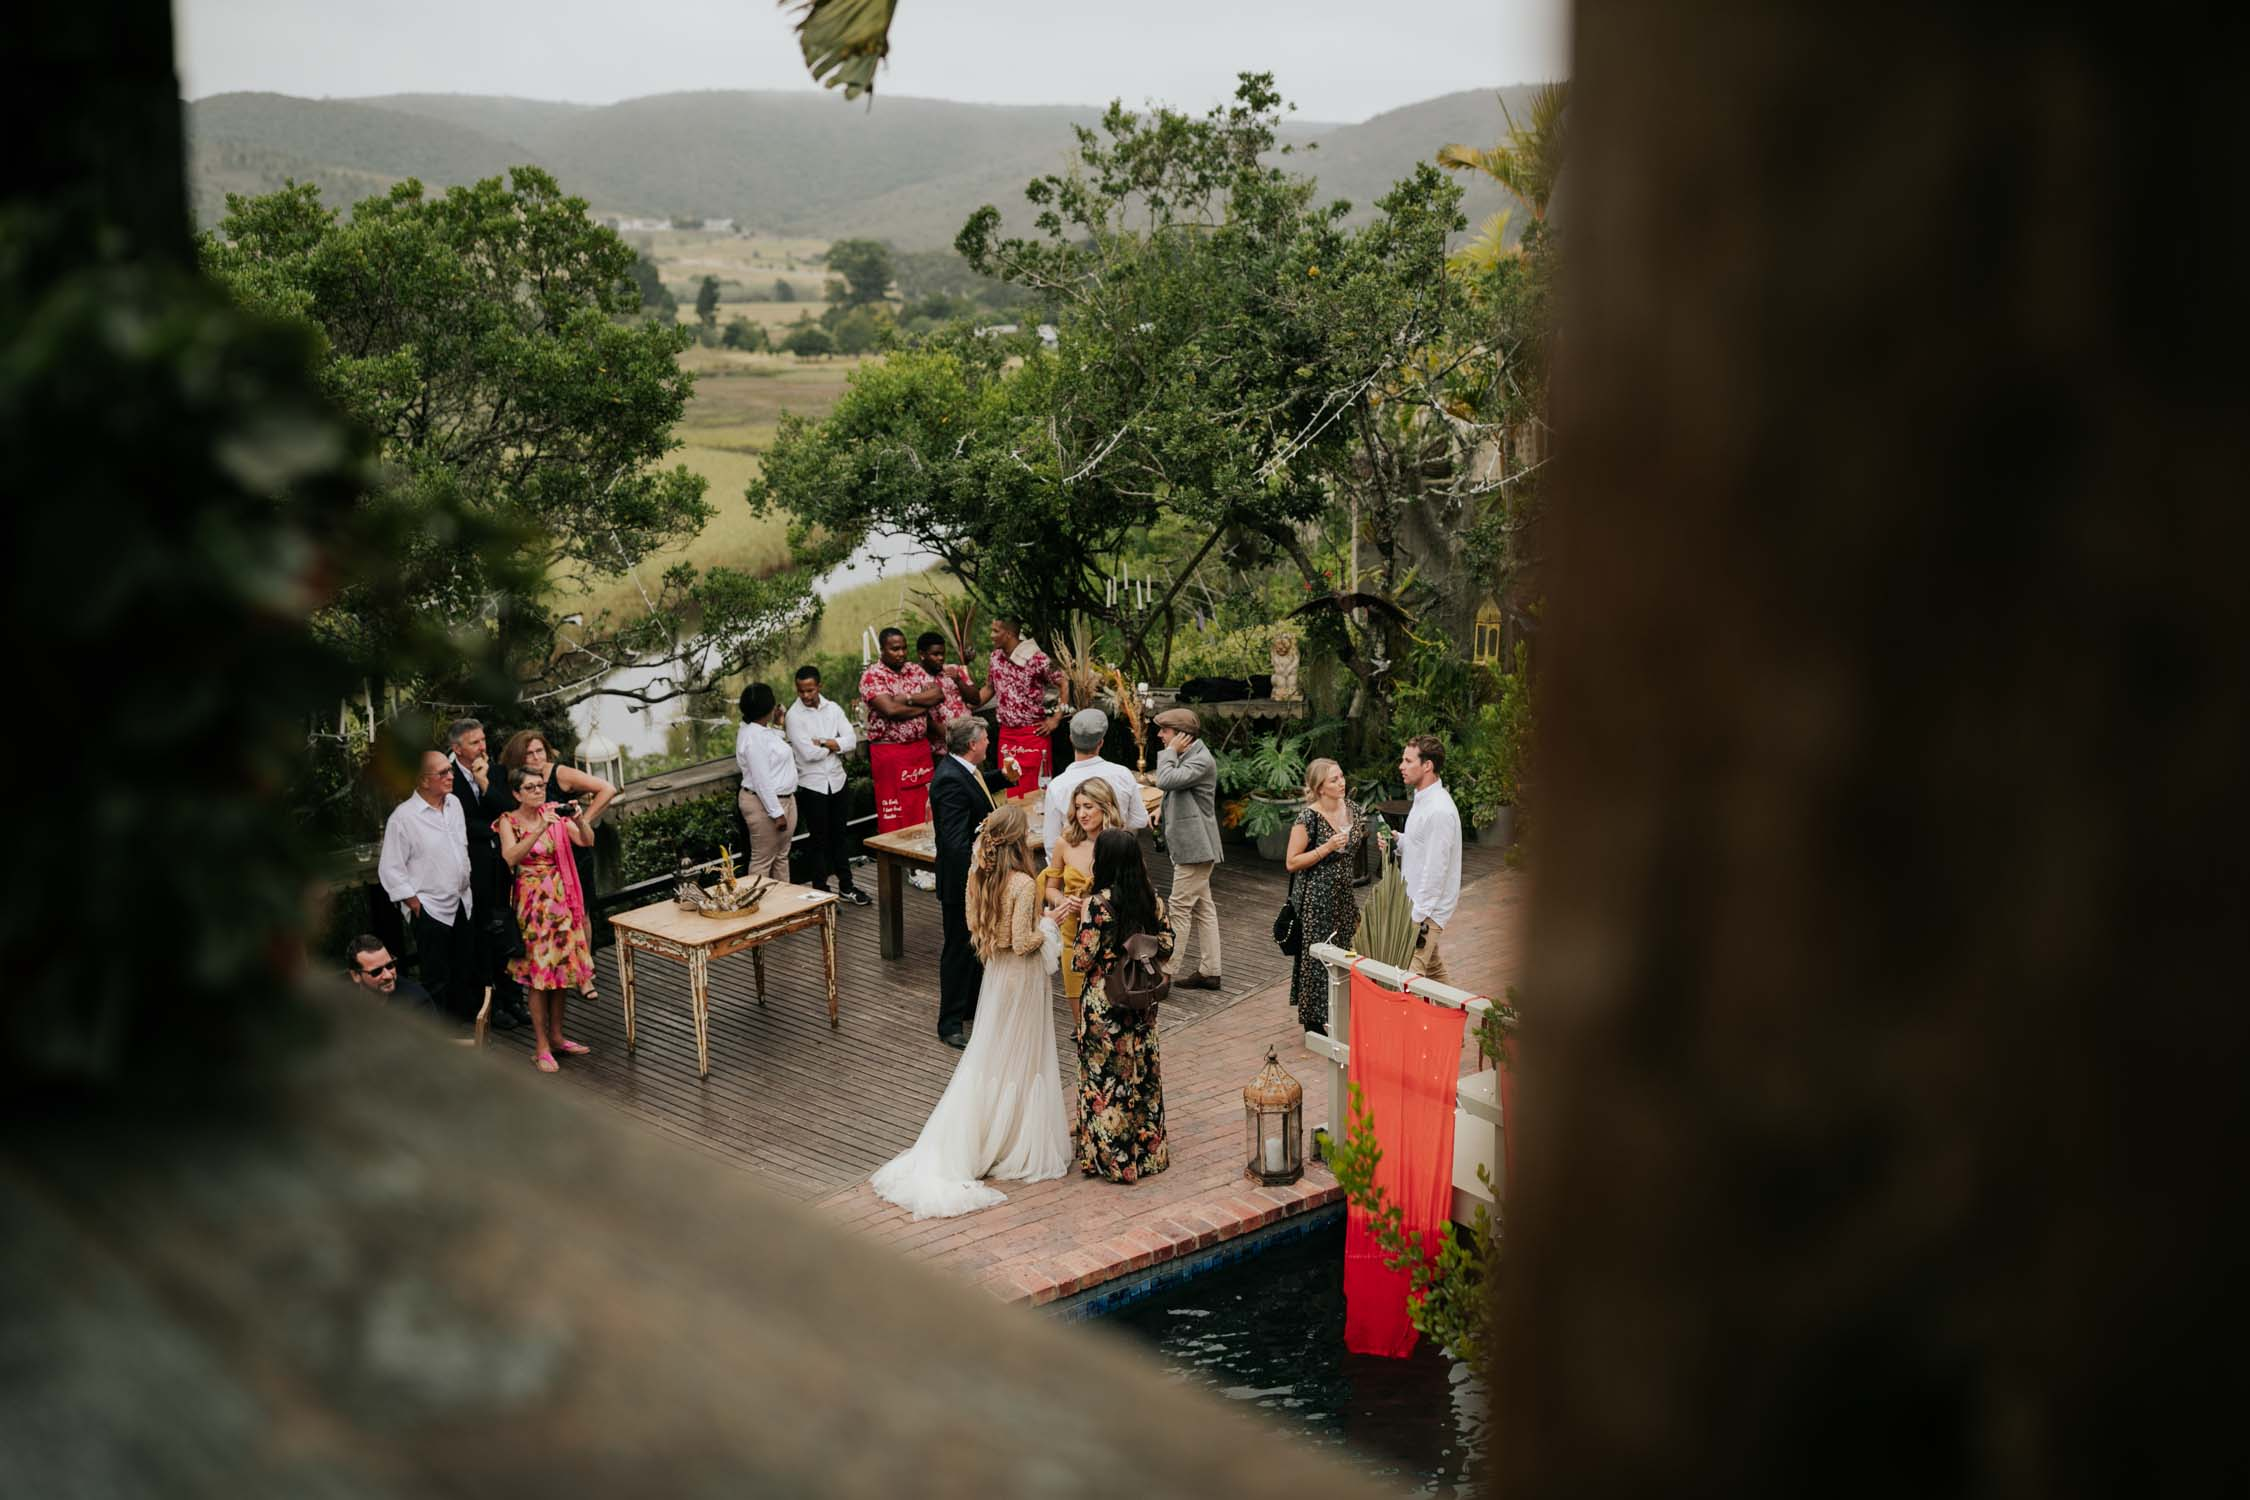 Pictures of guests taken by candid and photojournalistic wedding photographer at Emily Moon River Lodge wedding in Plett, Garden Route, South Africa